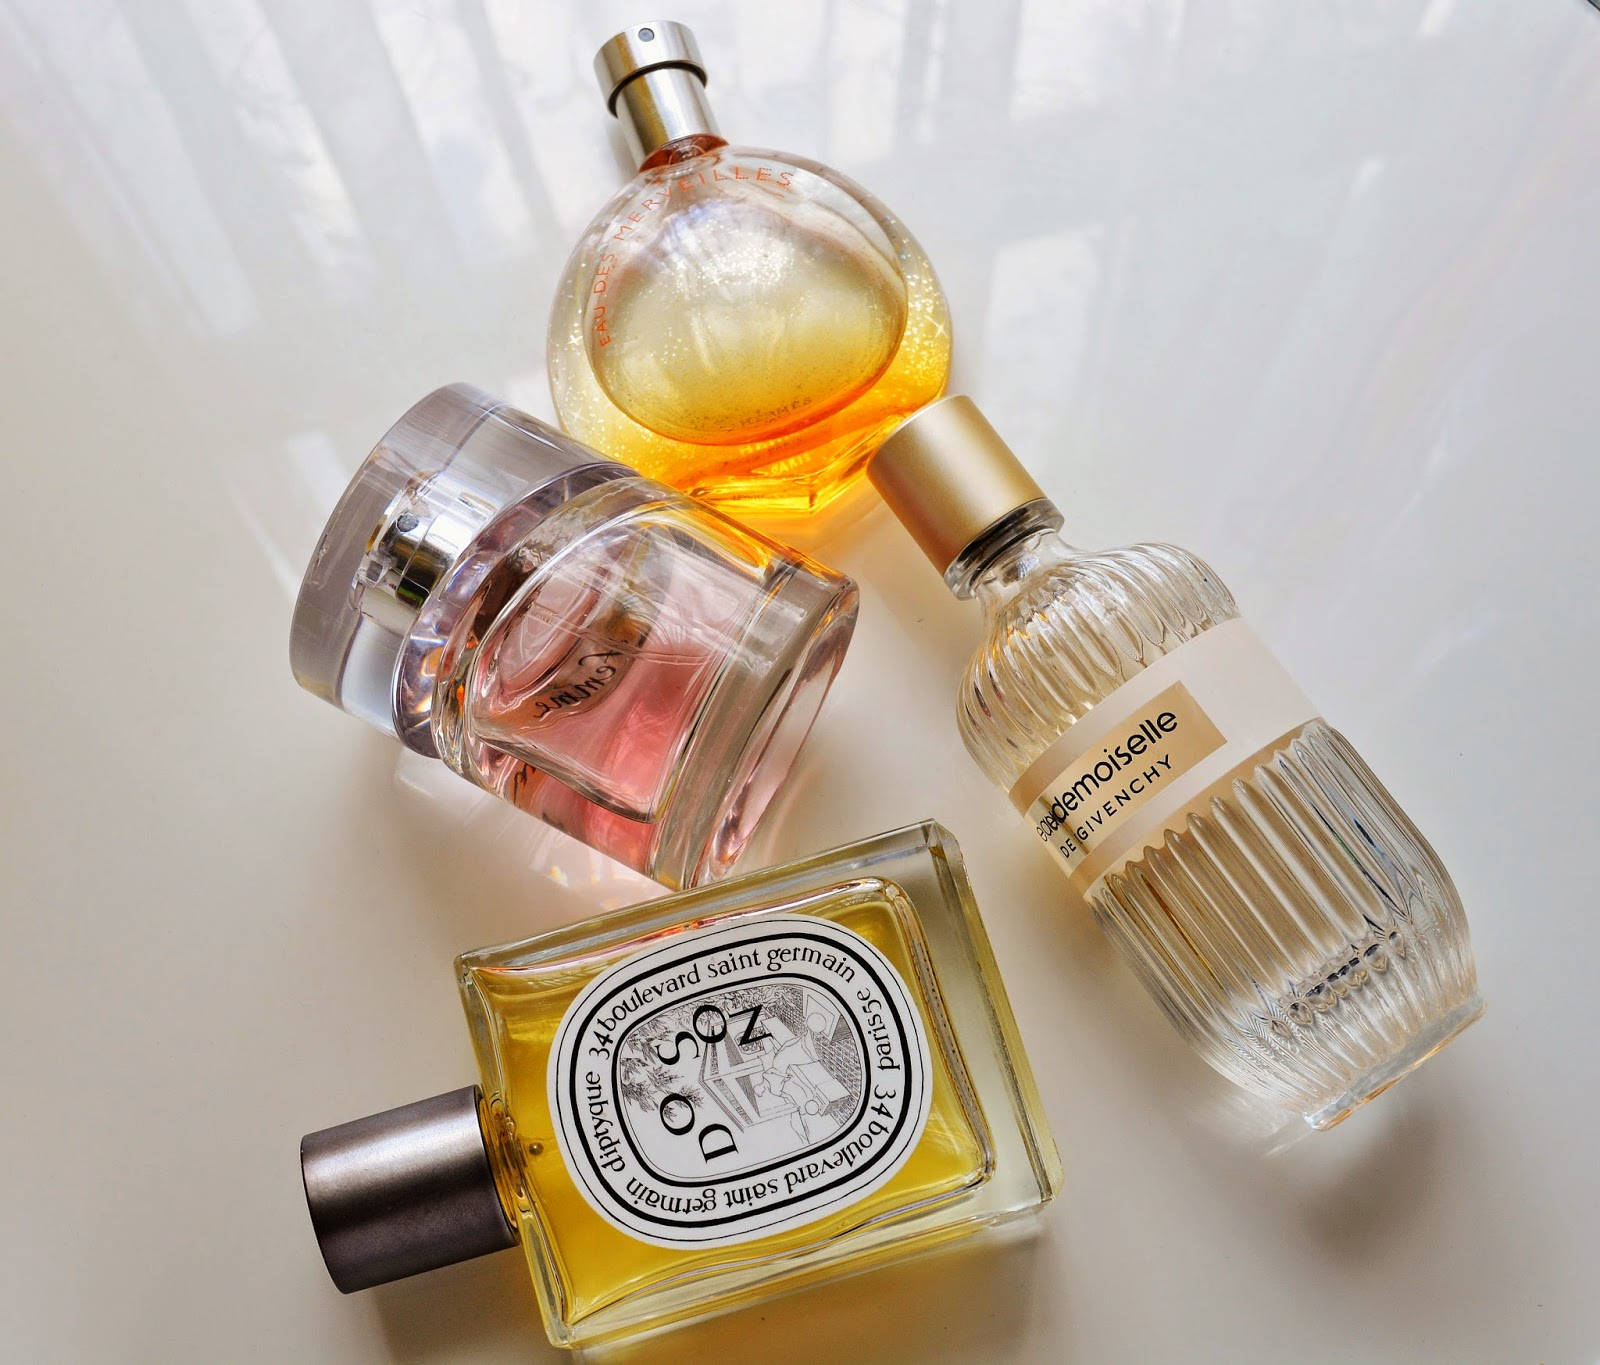 http://thoughtsofabumblemind.blogspot.co.uk/2014/06/favourite-perfumes-for-spring.html